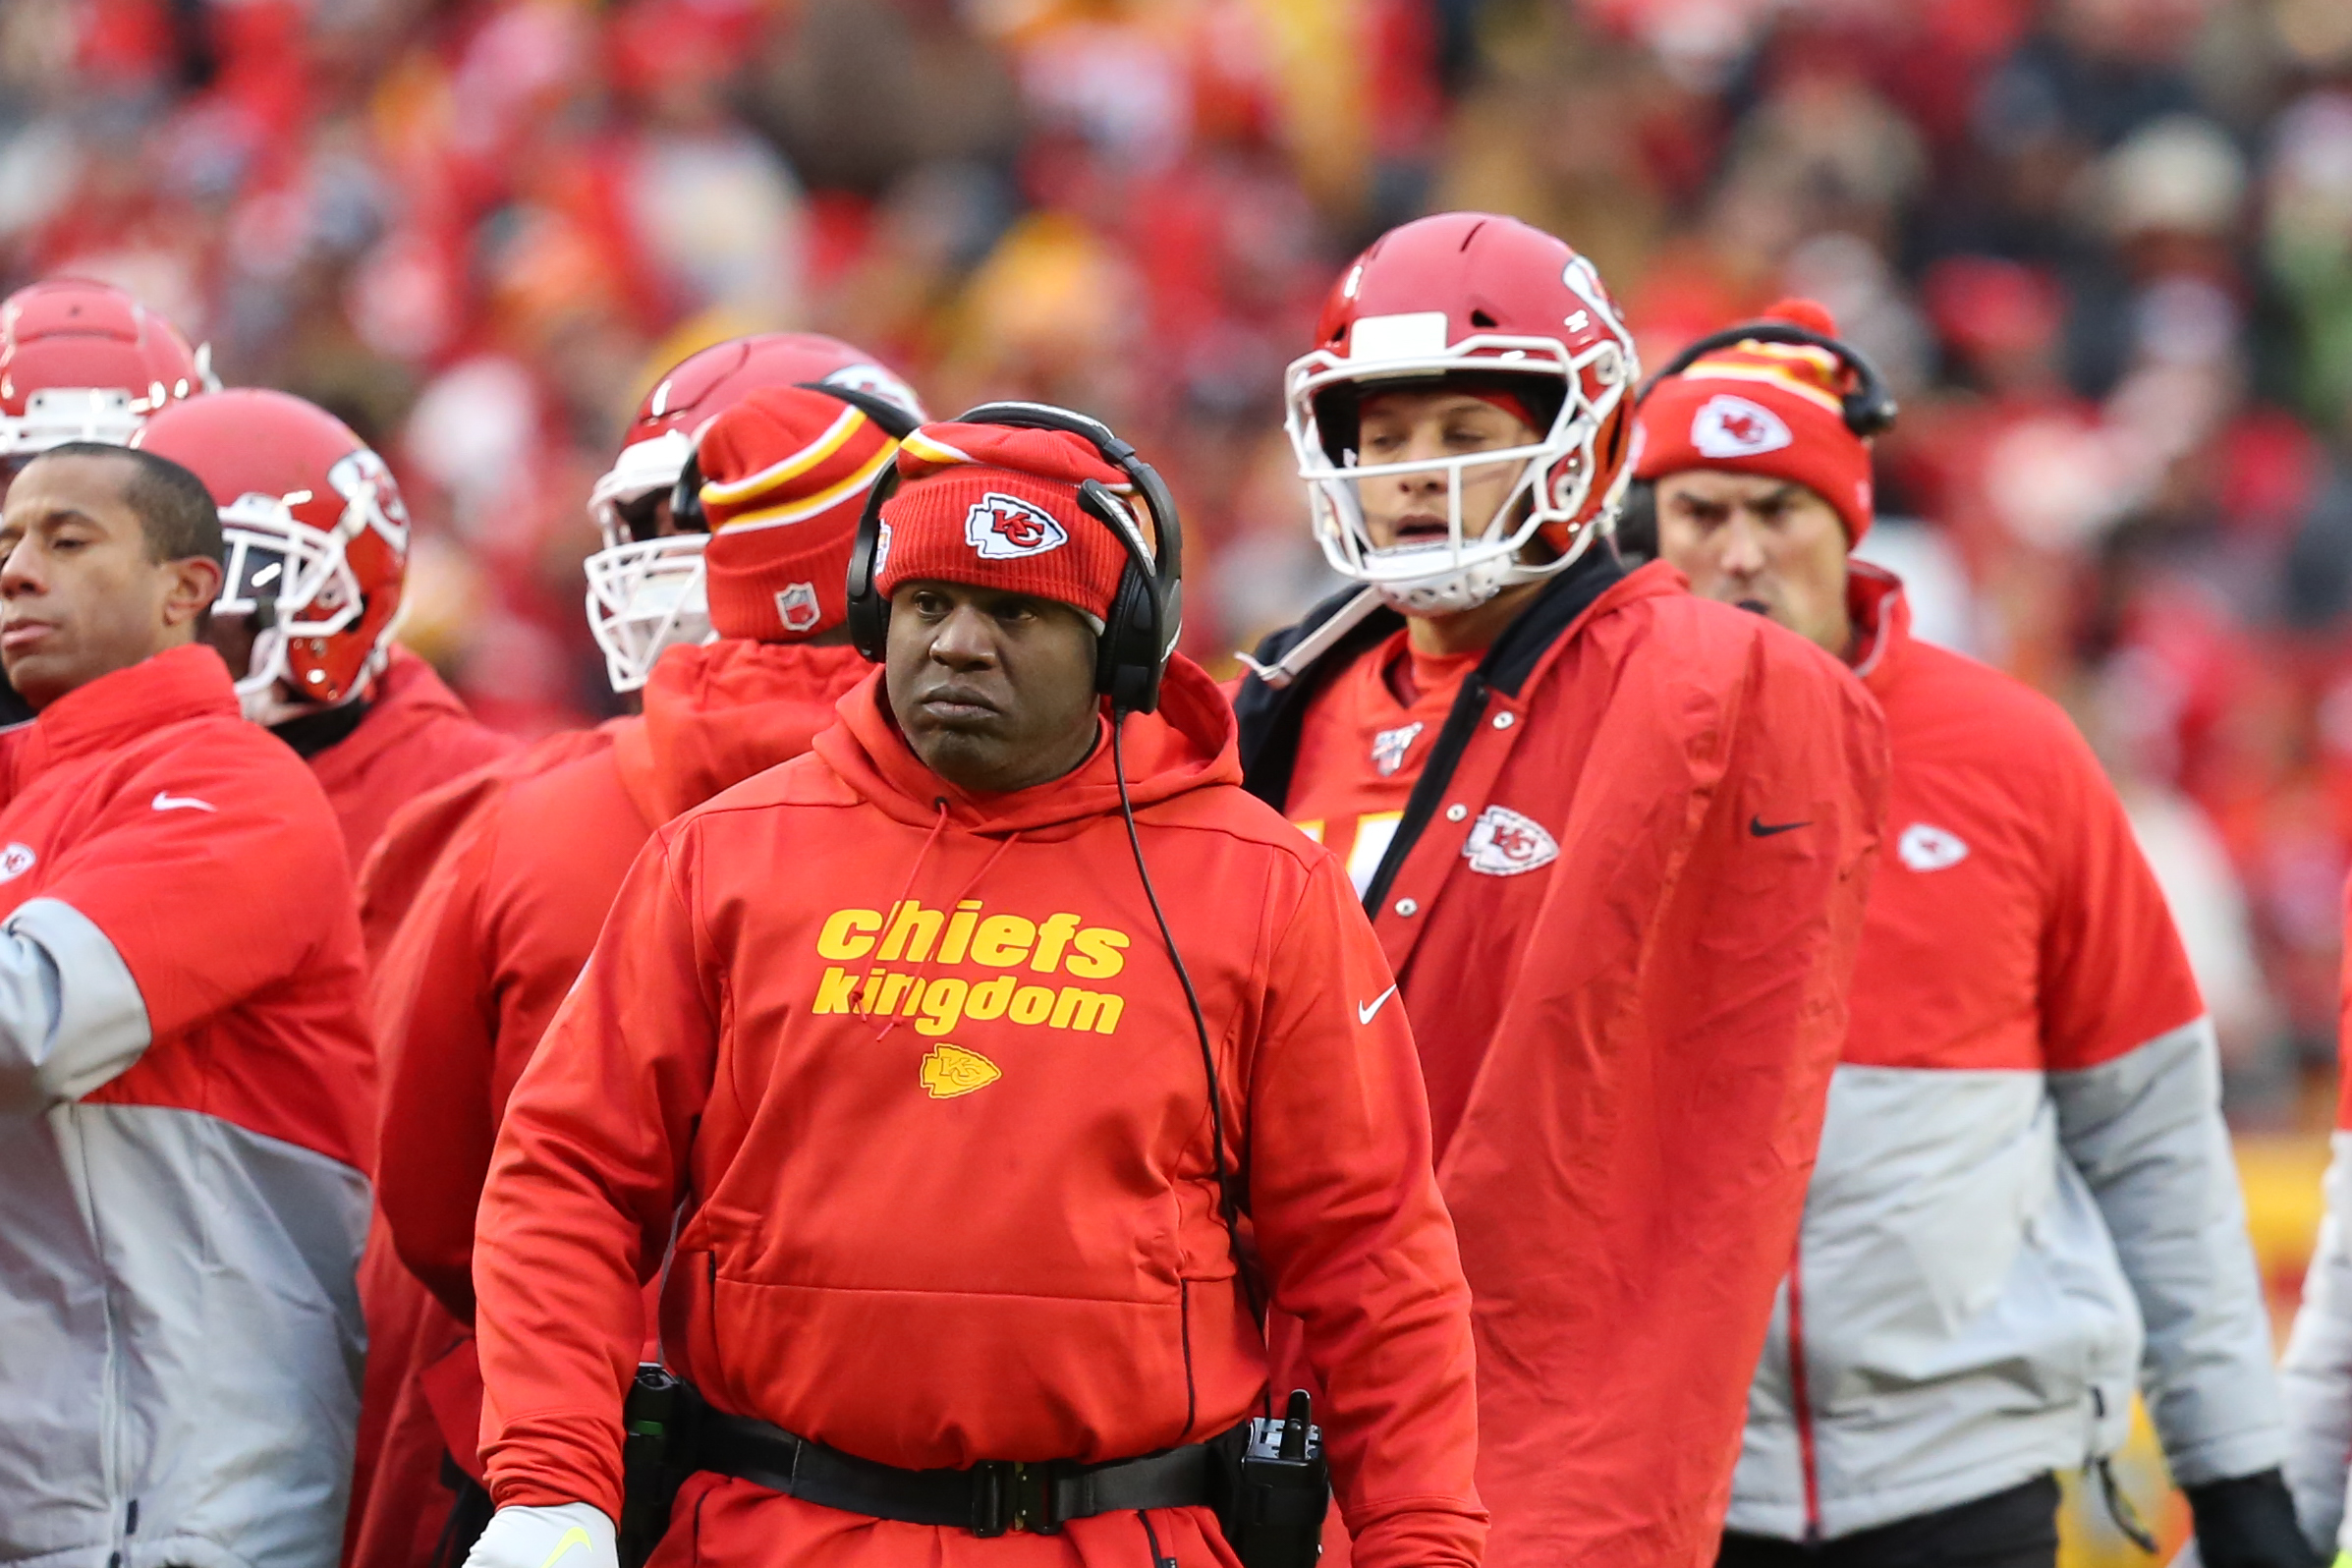 Eric Bieniemy's Chiefs just put up 51 points in a playoff game. Why isn't he a head coach yet?